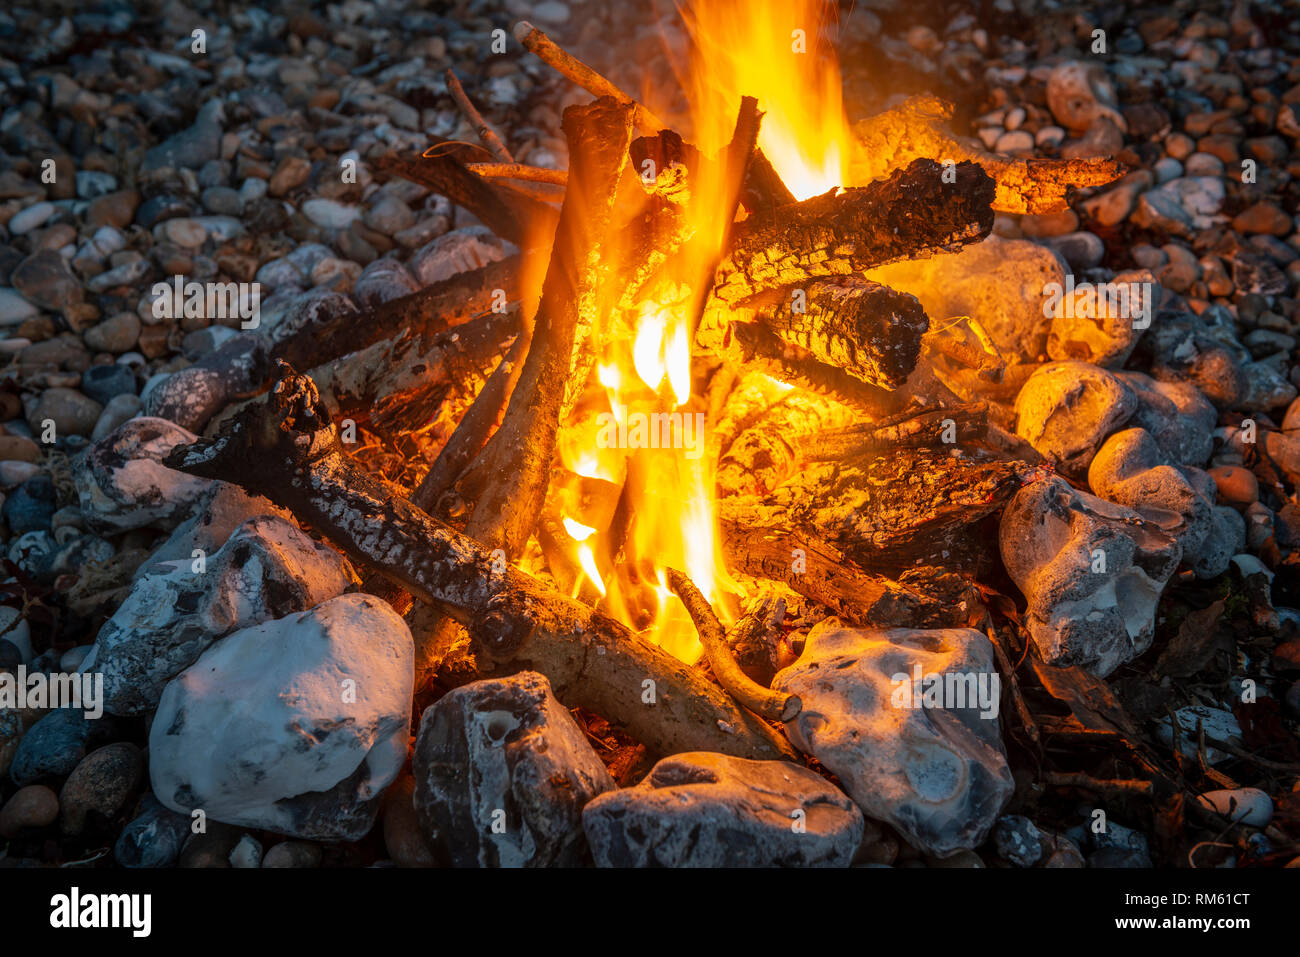 Small fire on a pebble beach - Stock Image